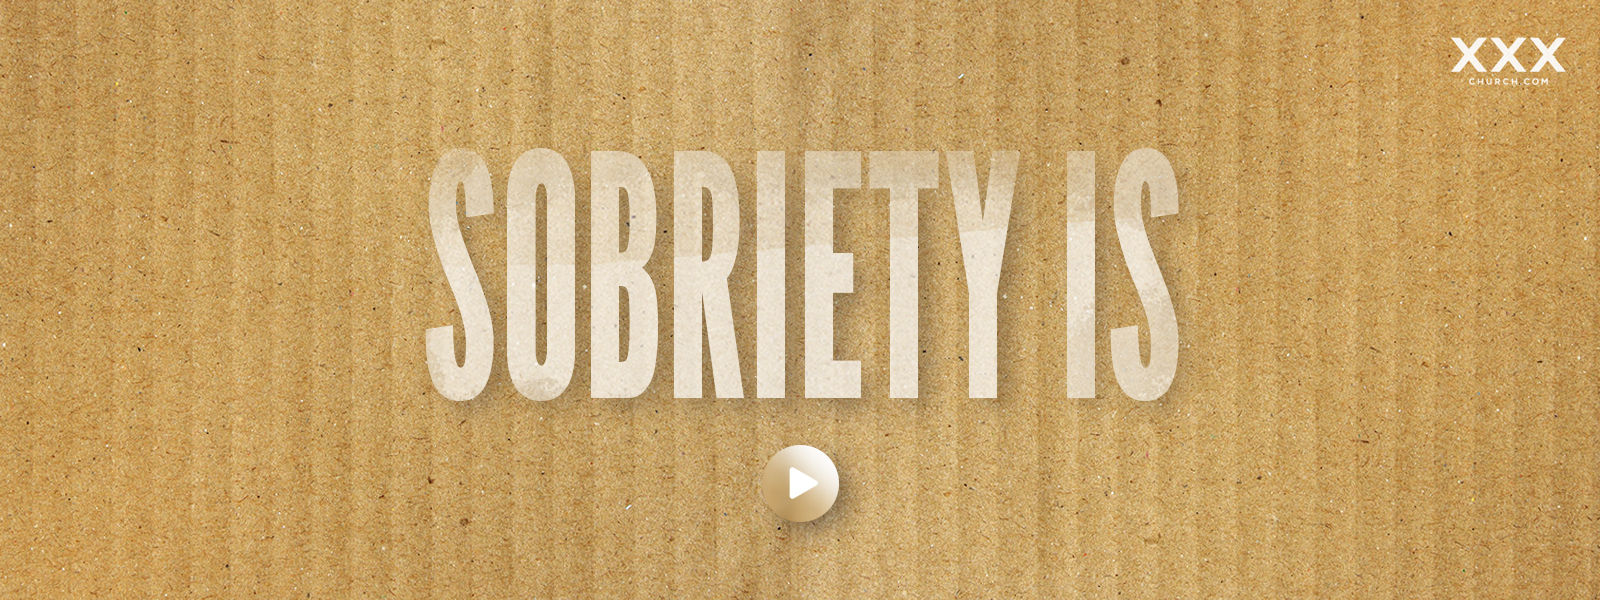 Sobriety Is